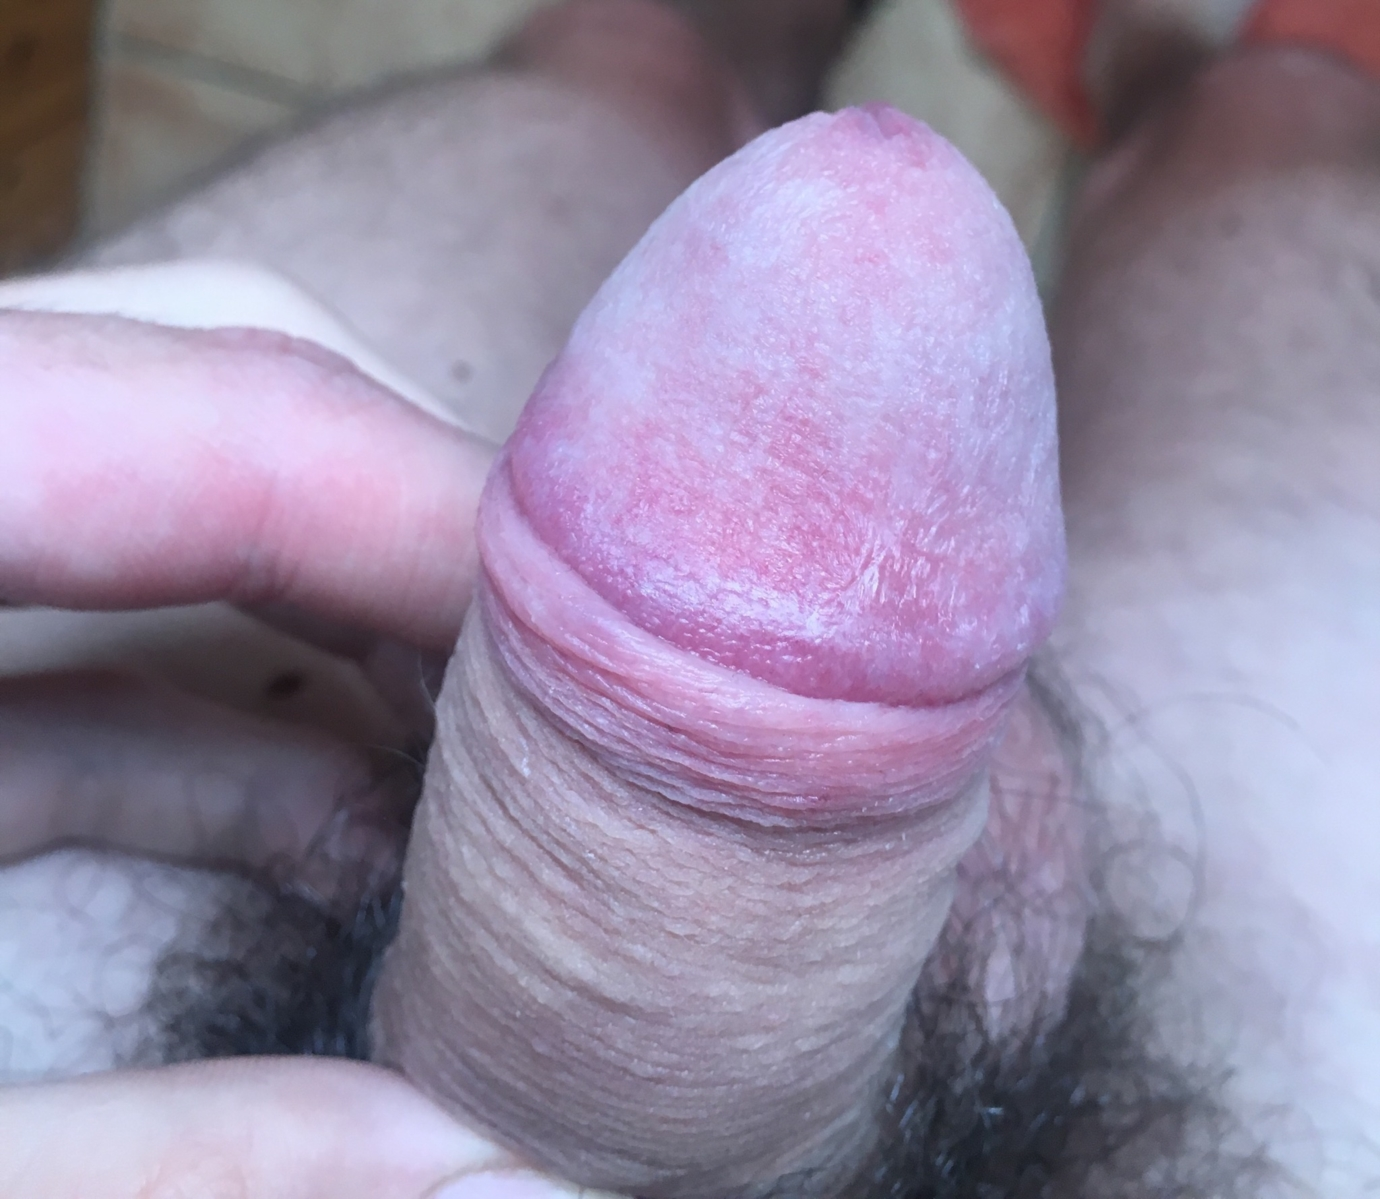 Significance of penile hypersensitivity in premature ejaculation